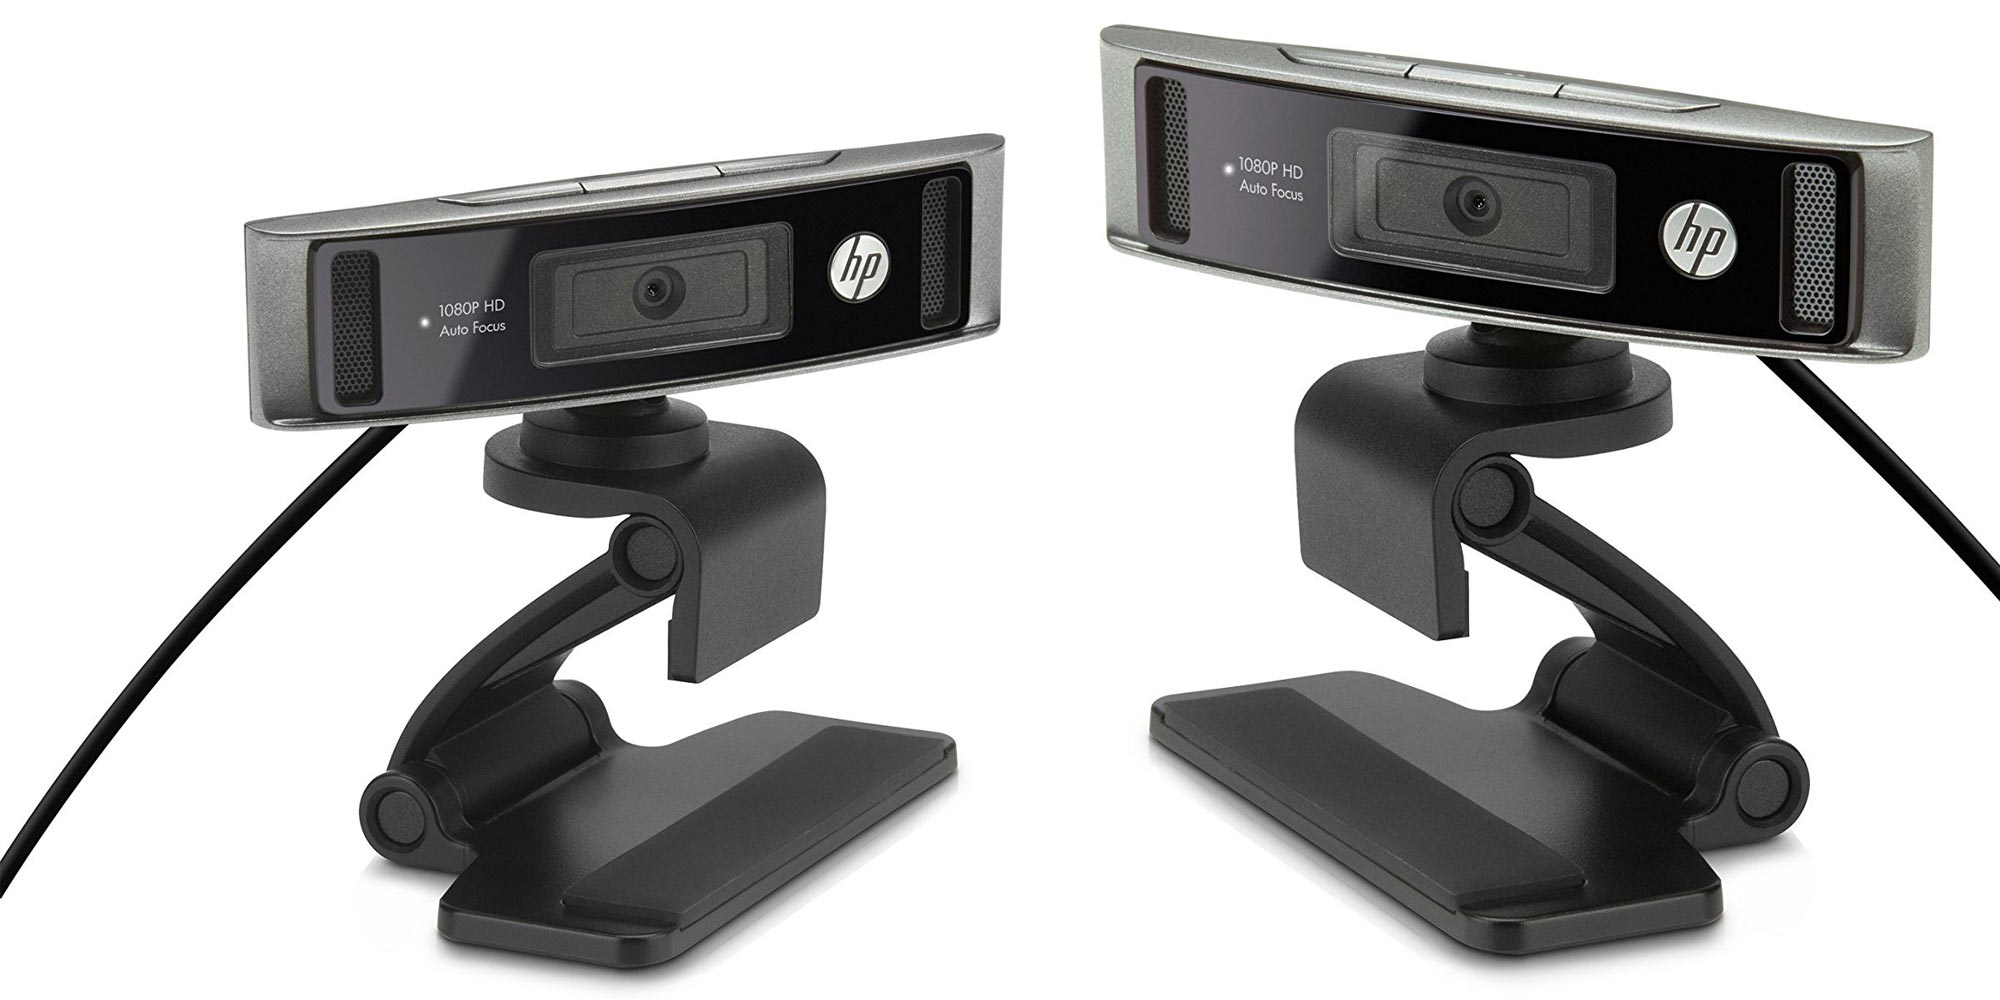 add this hp 1080p webcam to any computer for just $15 shipped - 9to5toys